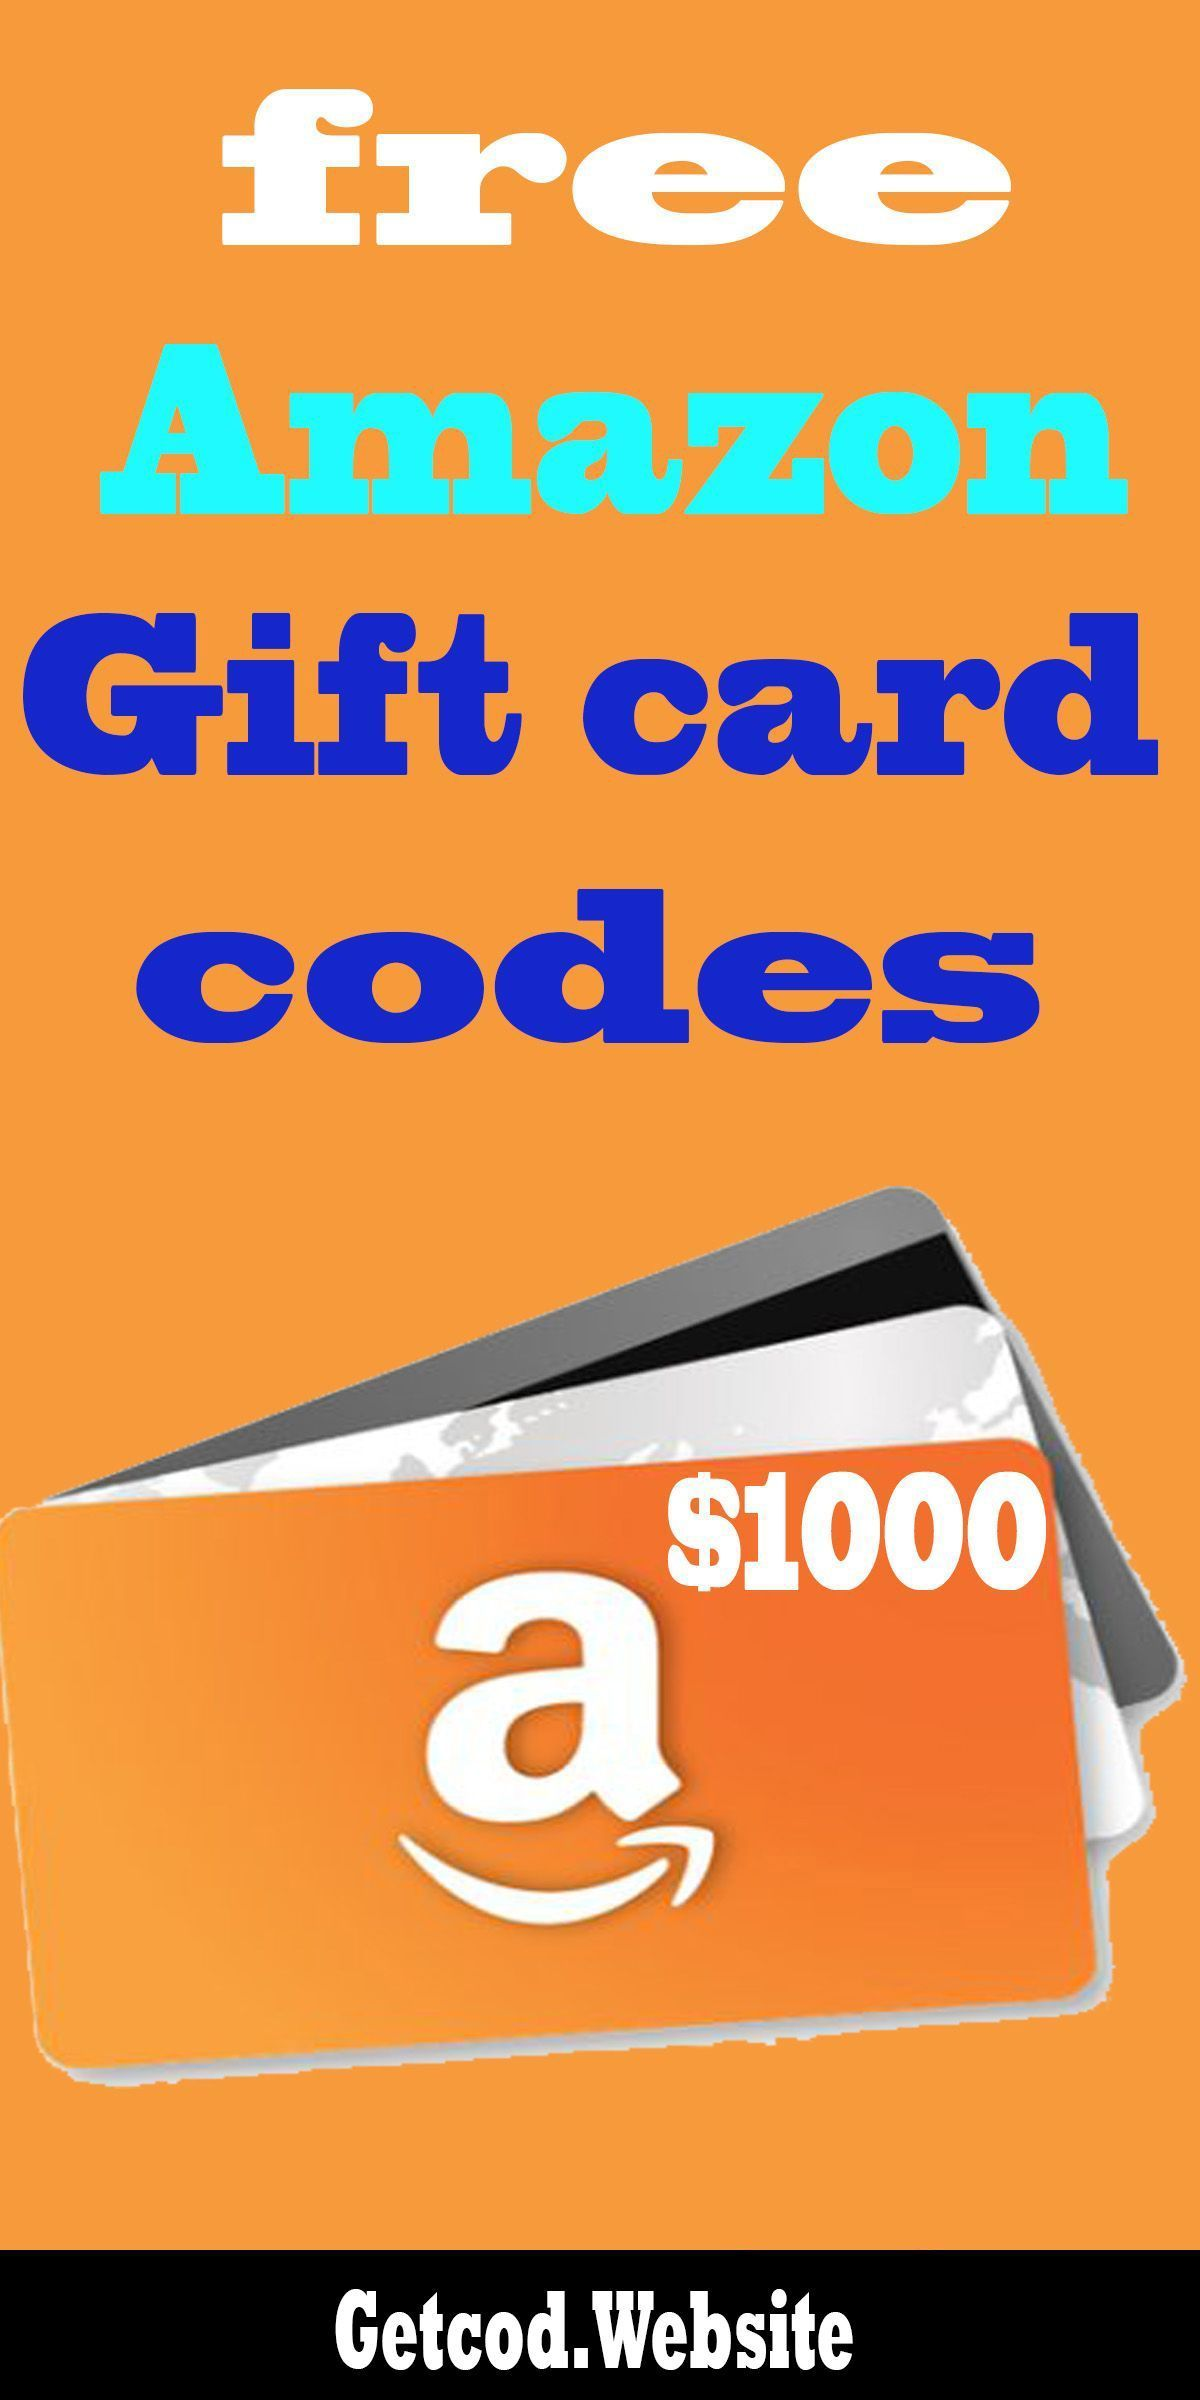 Amazon Promo Code Amazon Promo Code 2020 Amazon Promo Code Amazon P Amazon Gift Card Free Amazon Gift Cards Free Amazon Products